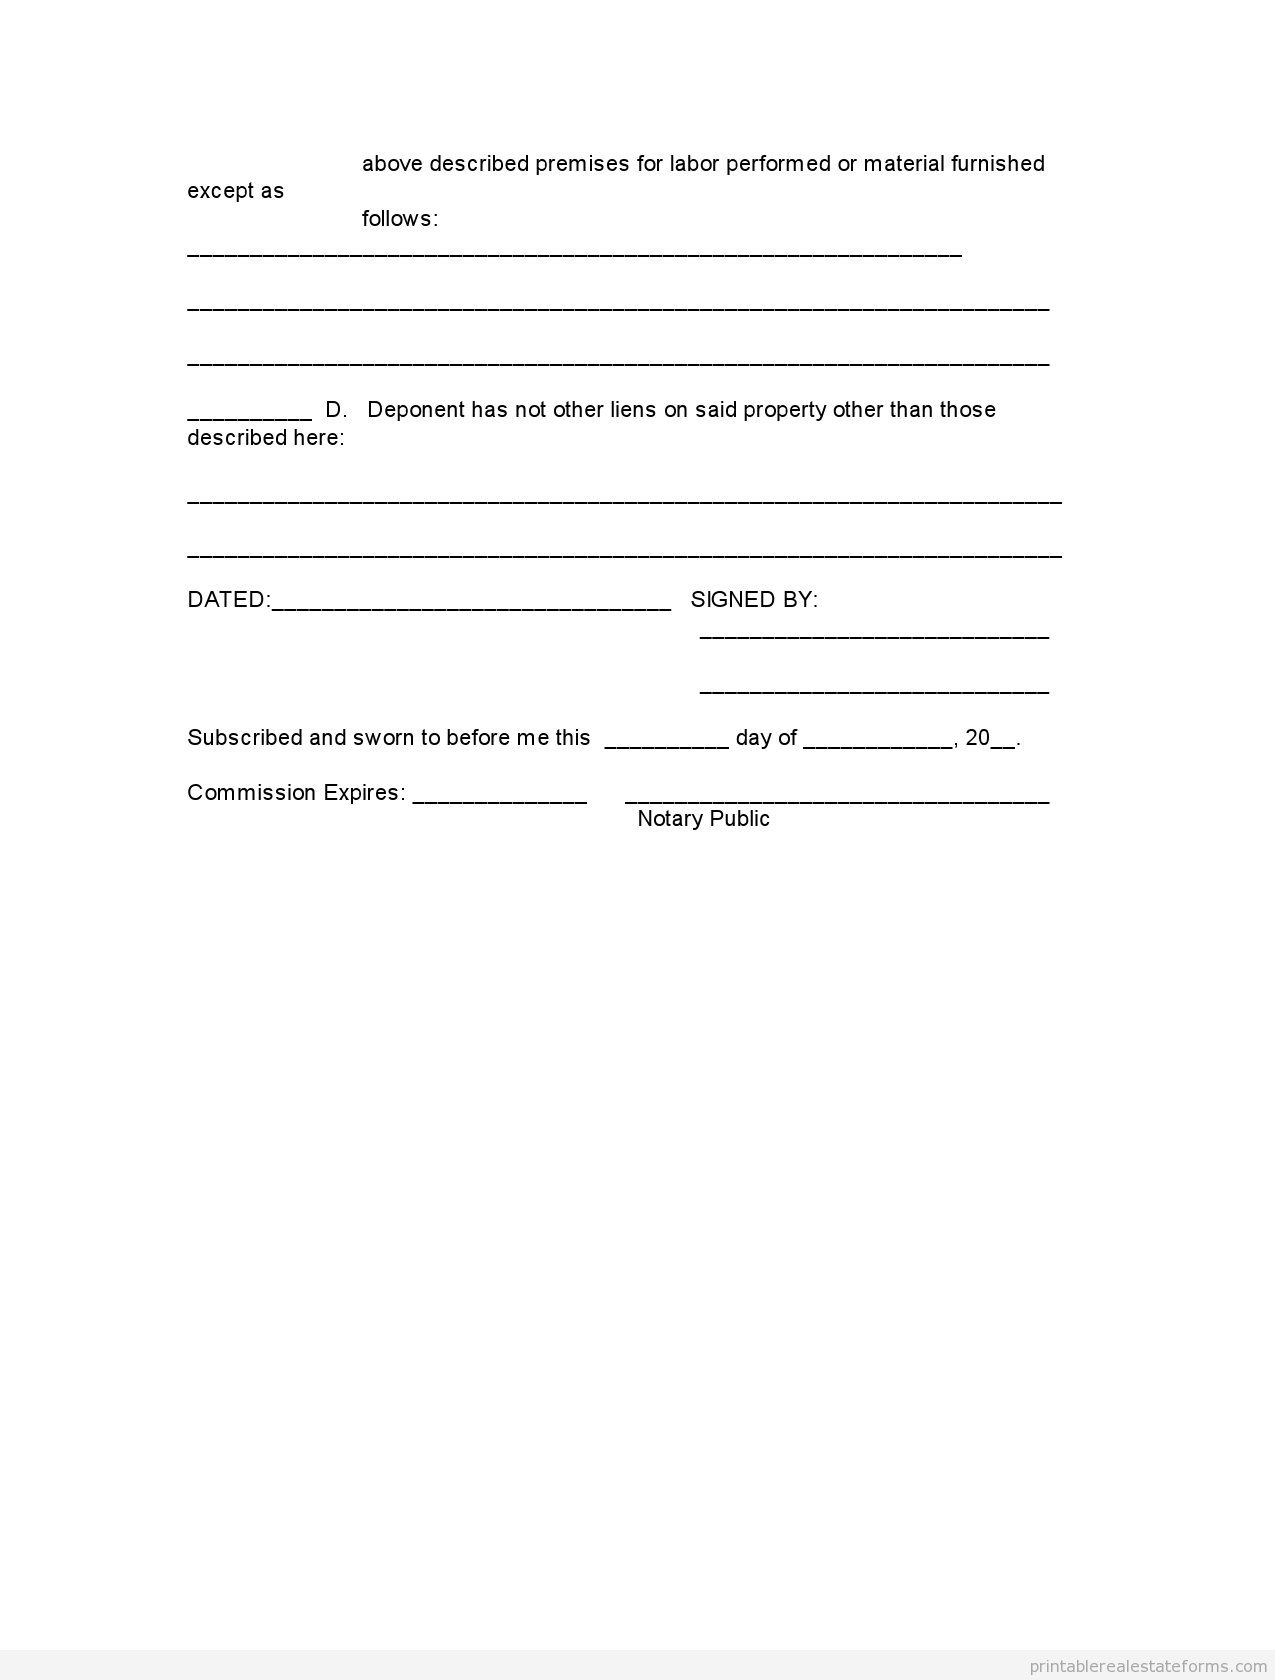 Printable Affidavit Of Ownership 2 Template 2015  Affidavit Word Template